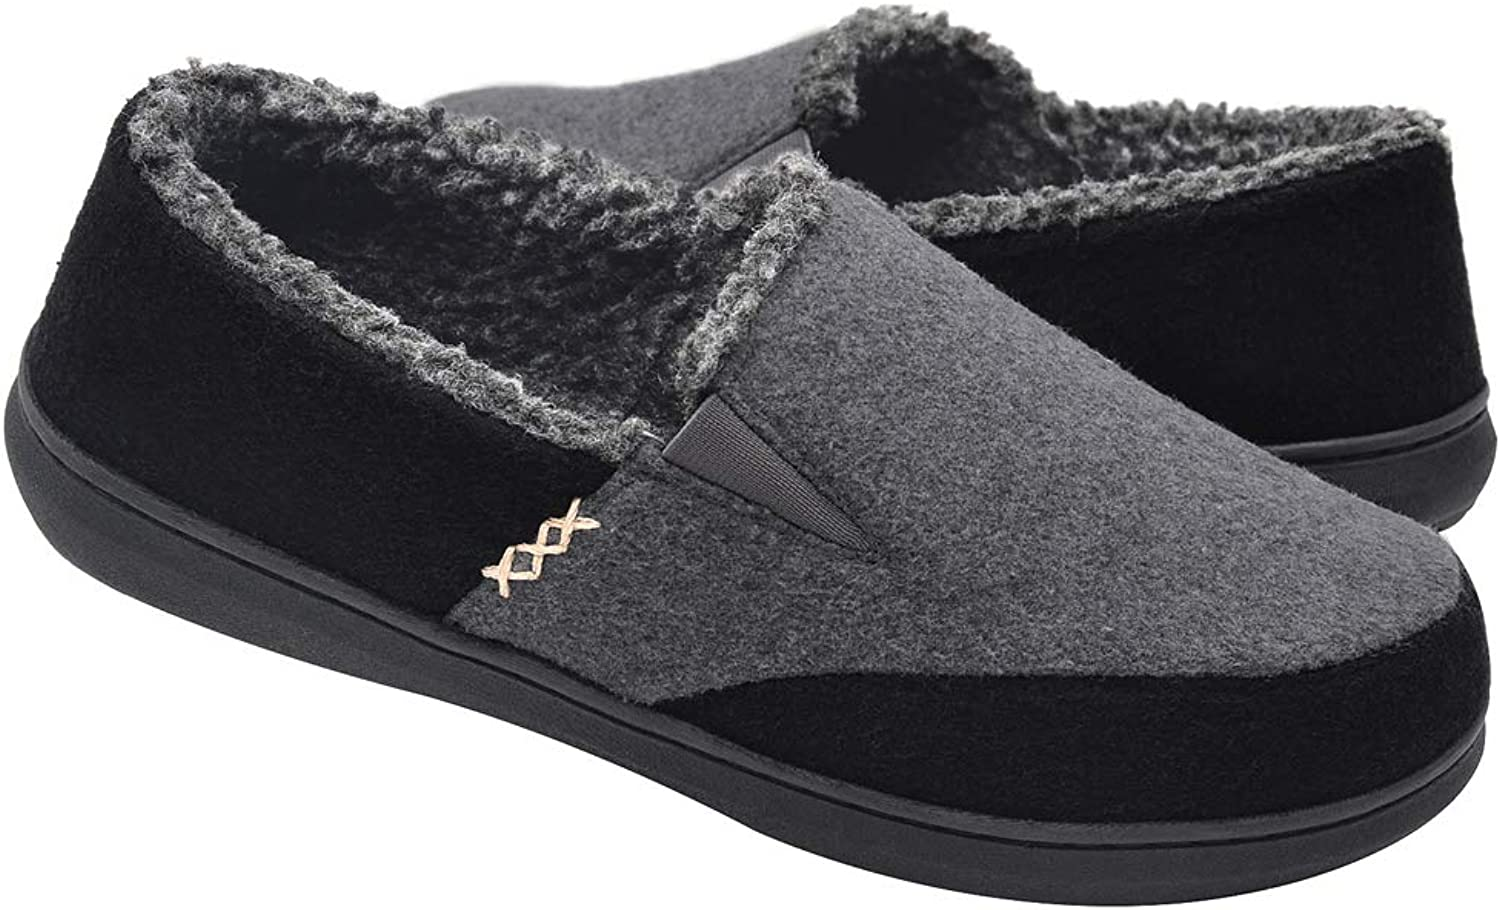 Zigzagger Men's Wool Micro Suede Moccasin Slippers House shoes Home Indoor Outdoor Footwear